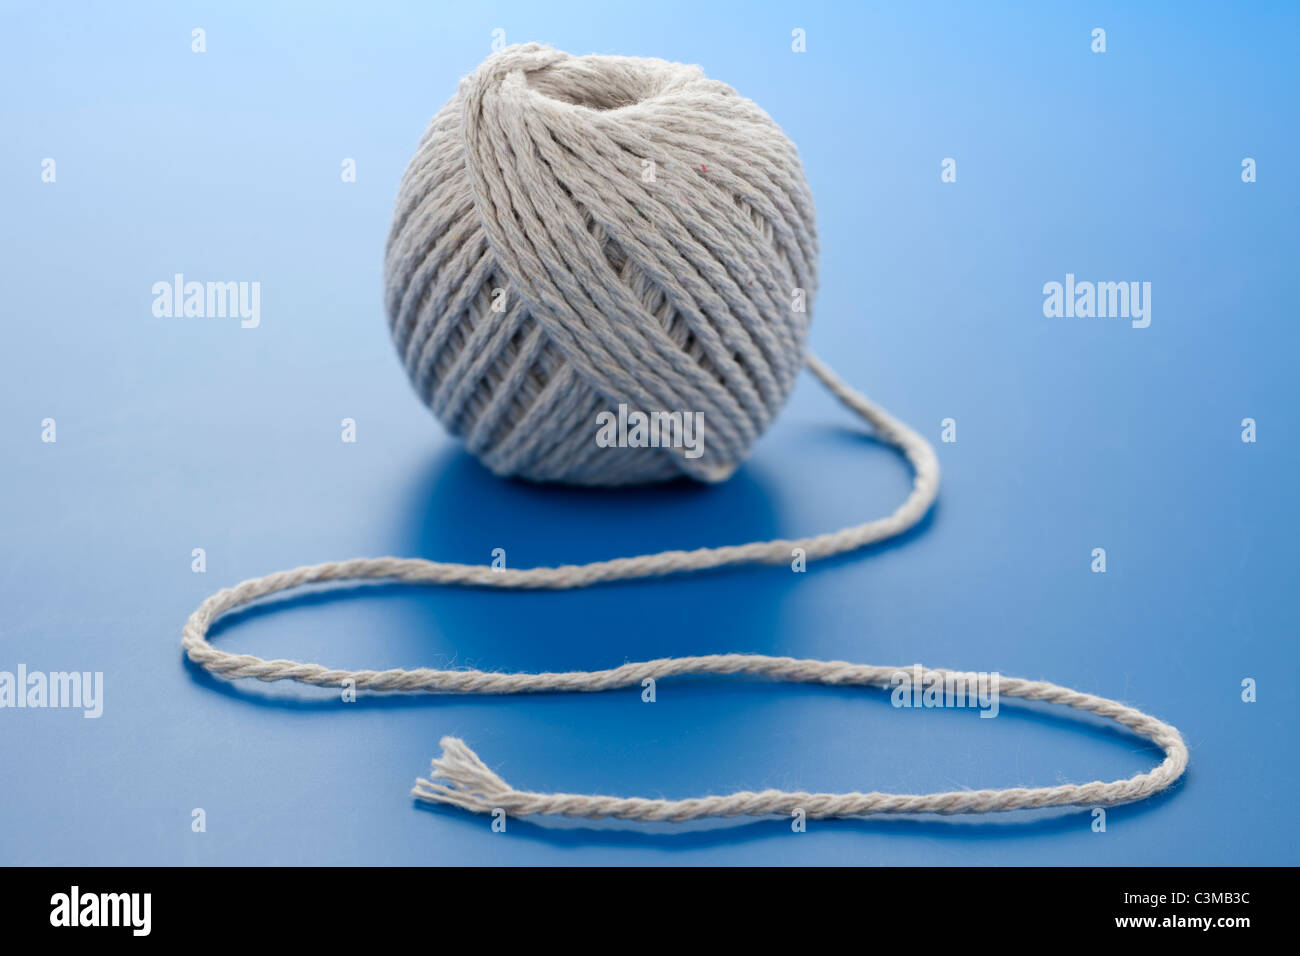 Ball of string - Stock Image